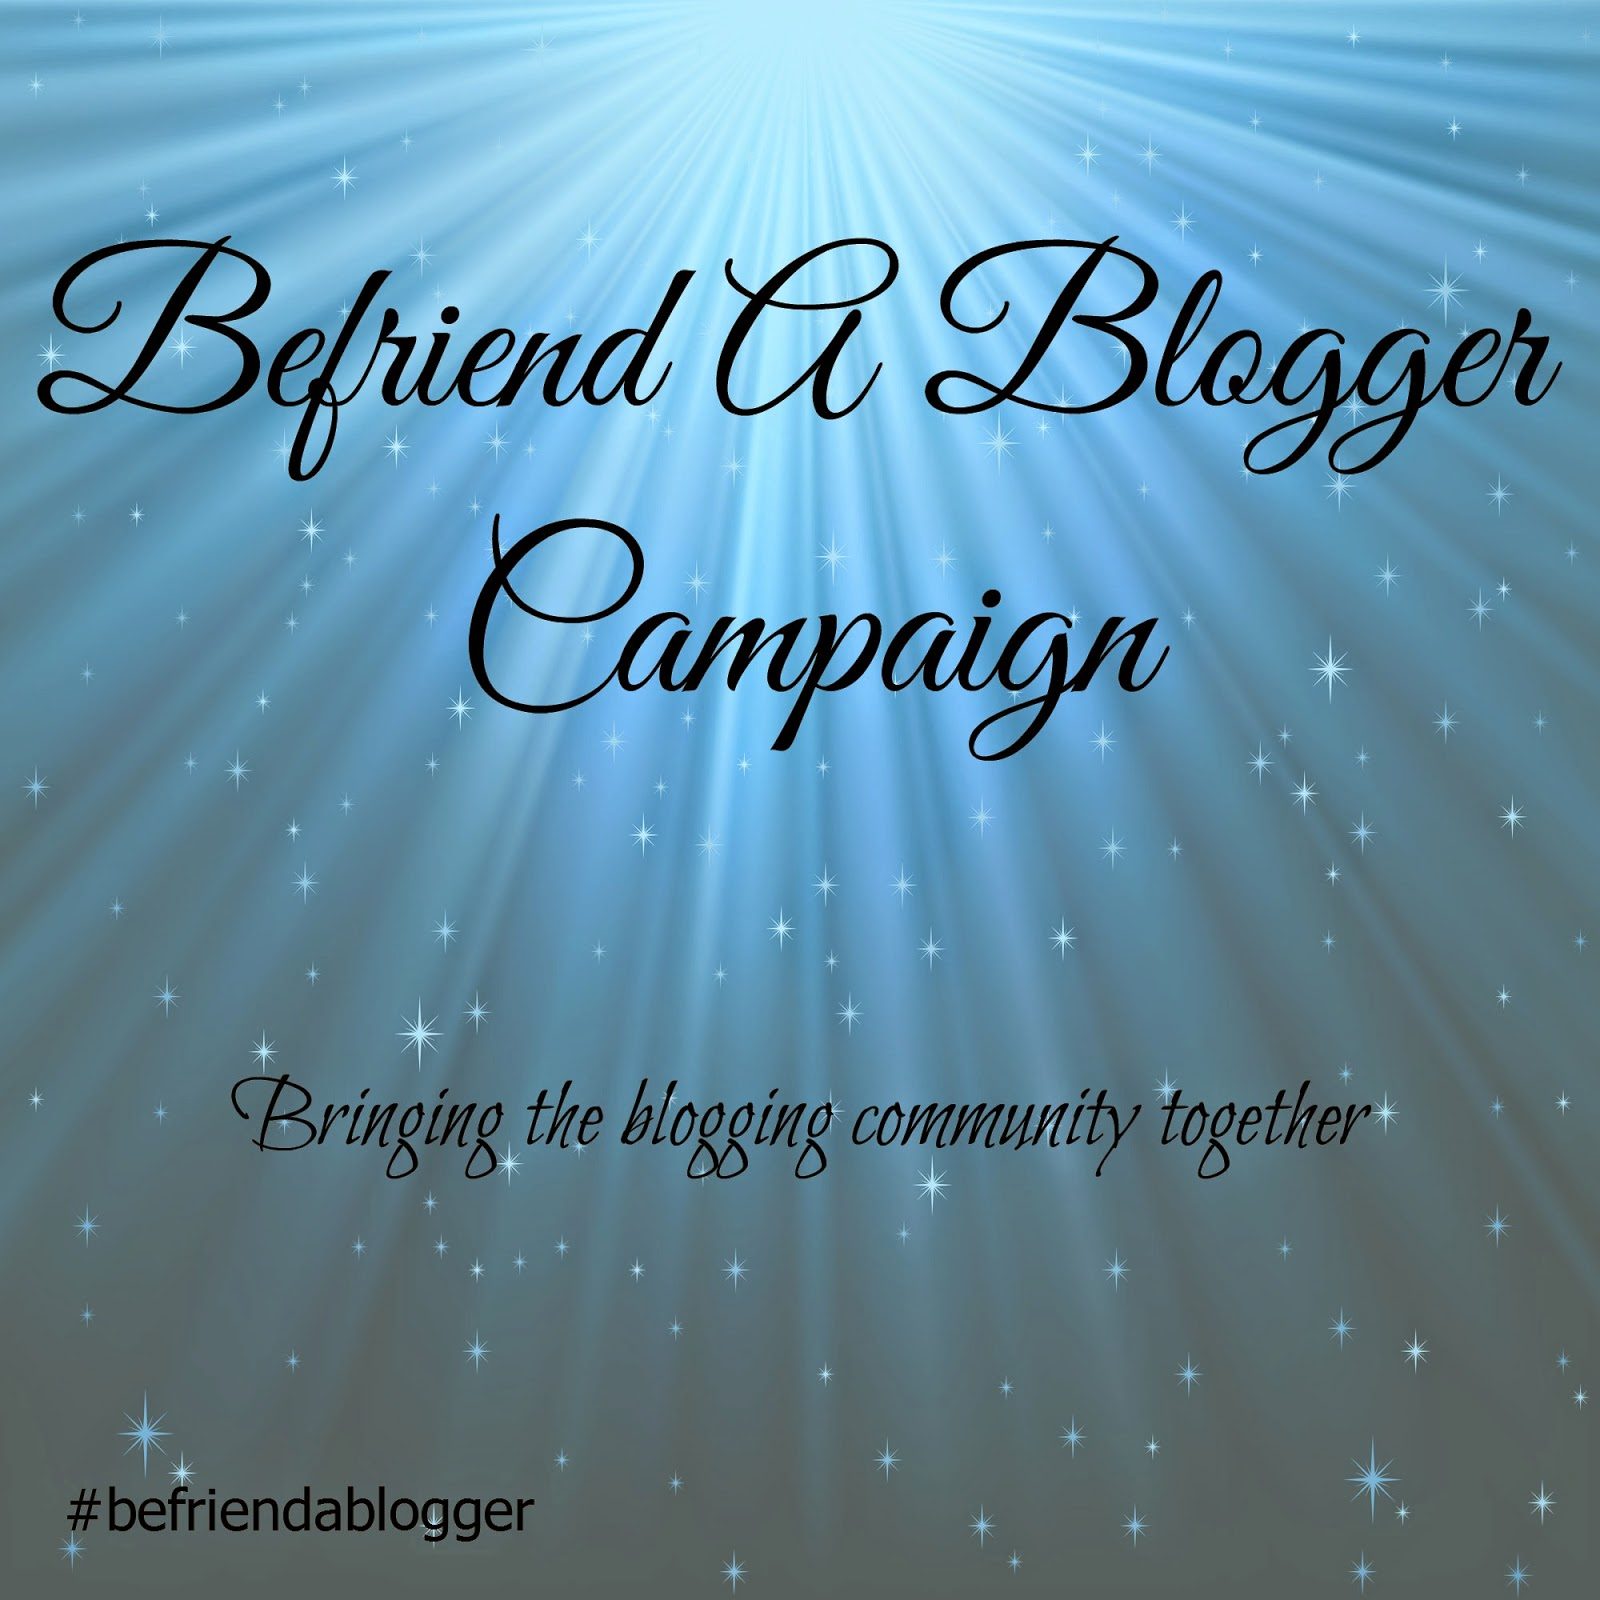 befriend a blogger, #befriendablogger